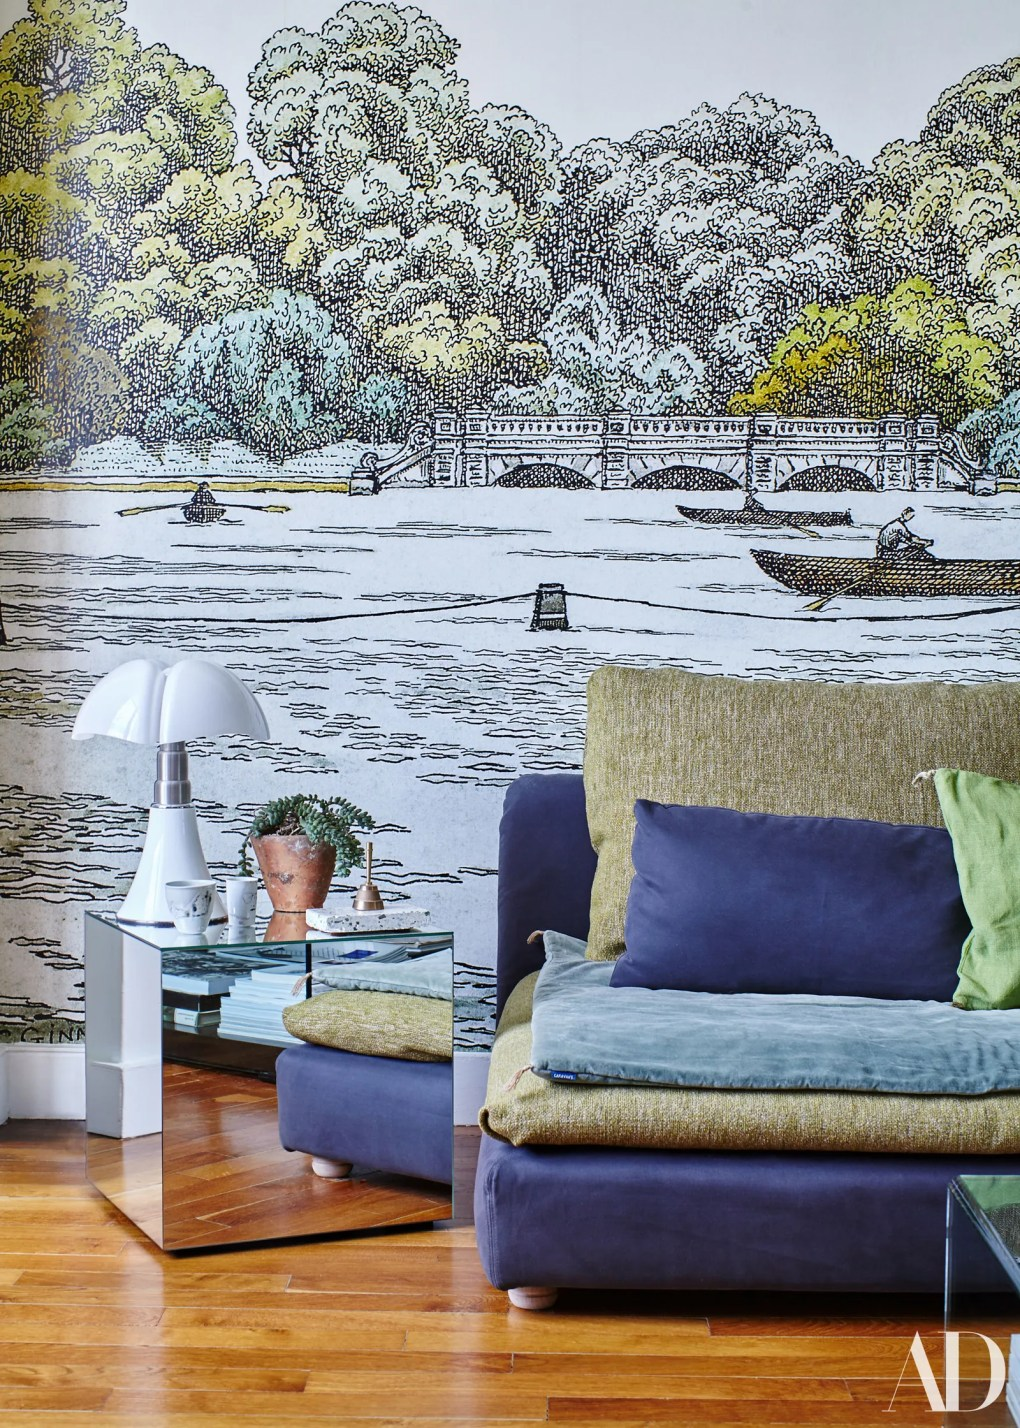 Landscape wall mural and mirror table in Paris apartment.